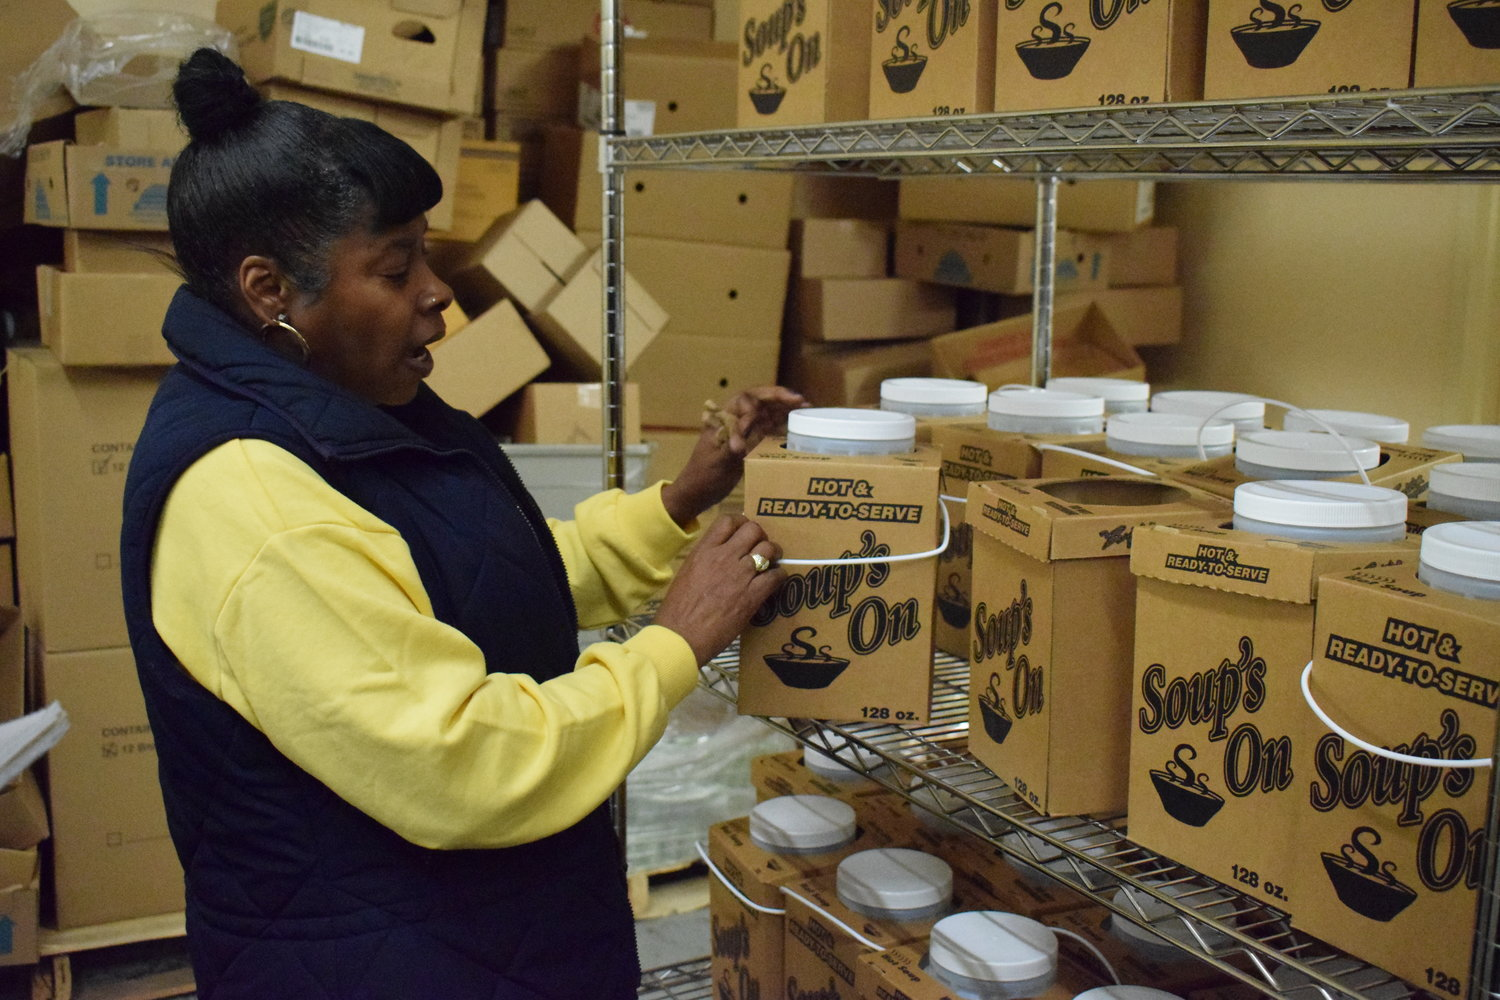 Yolanda Murray, food pantry manager for the Long Island Council of Churches, in Freeport, said the pantry was in need of cereal and soup.